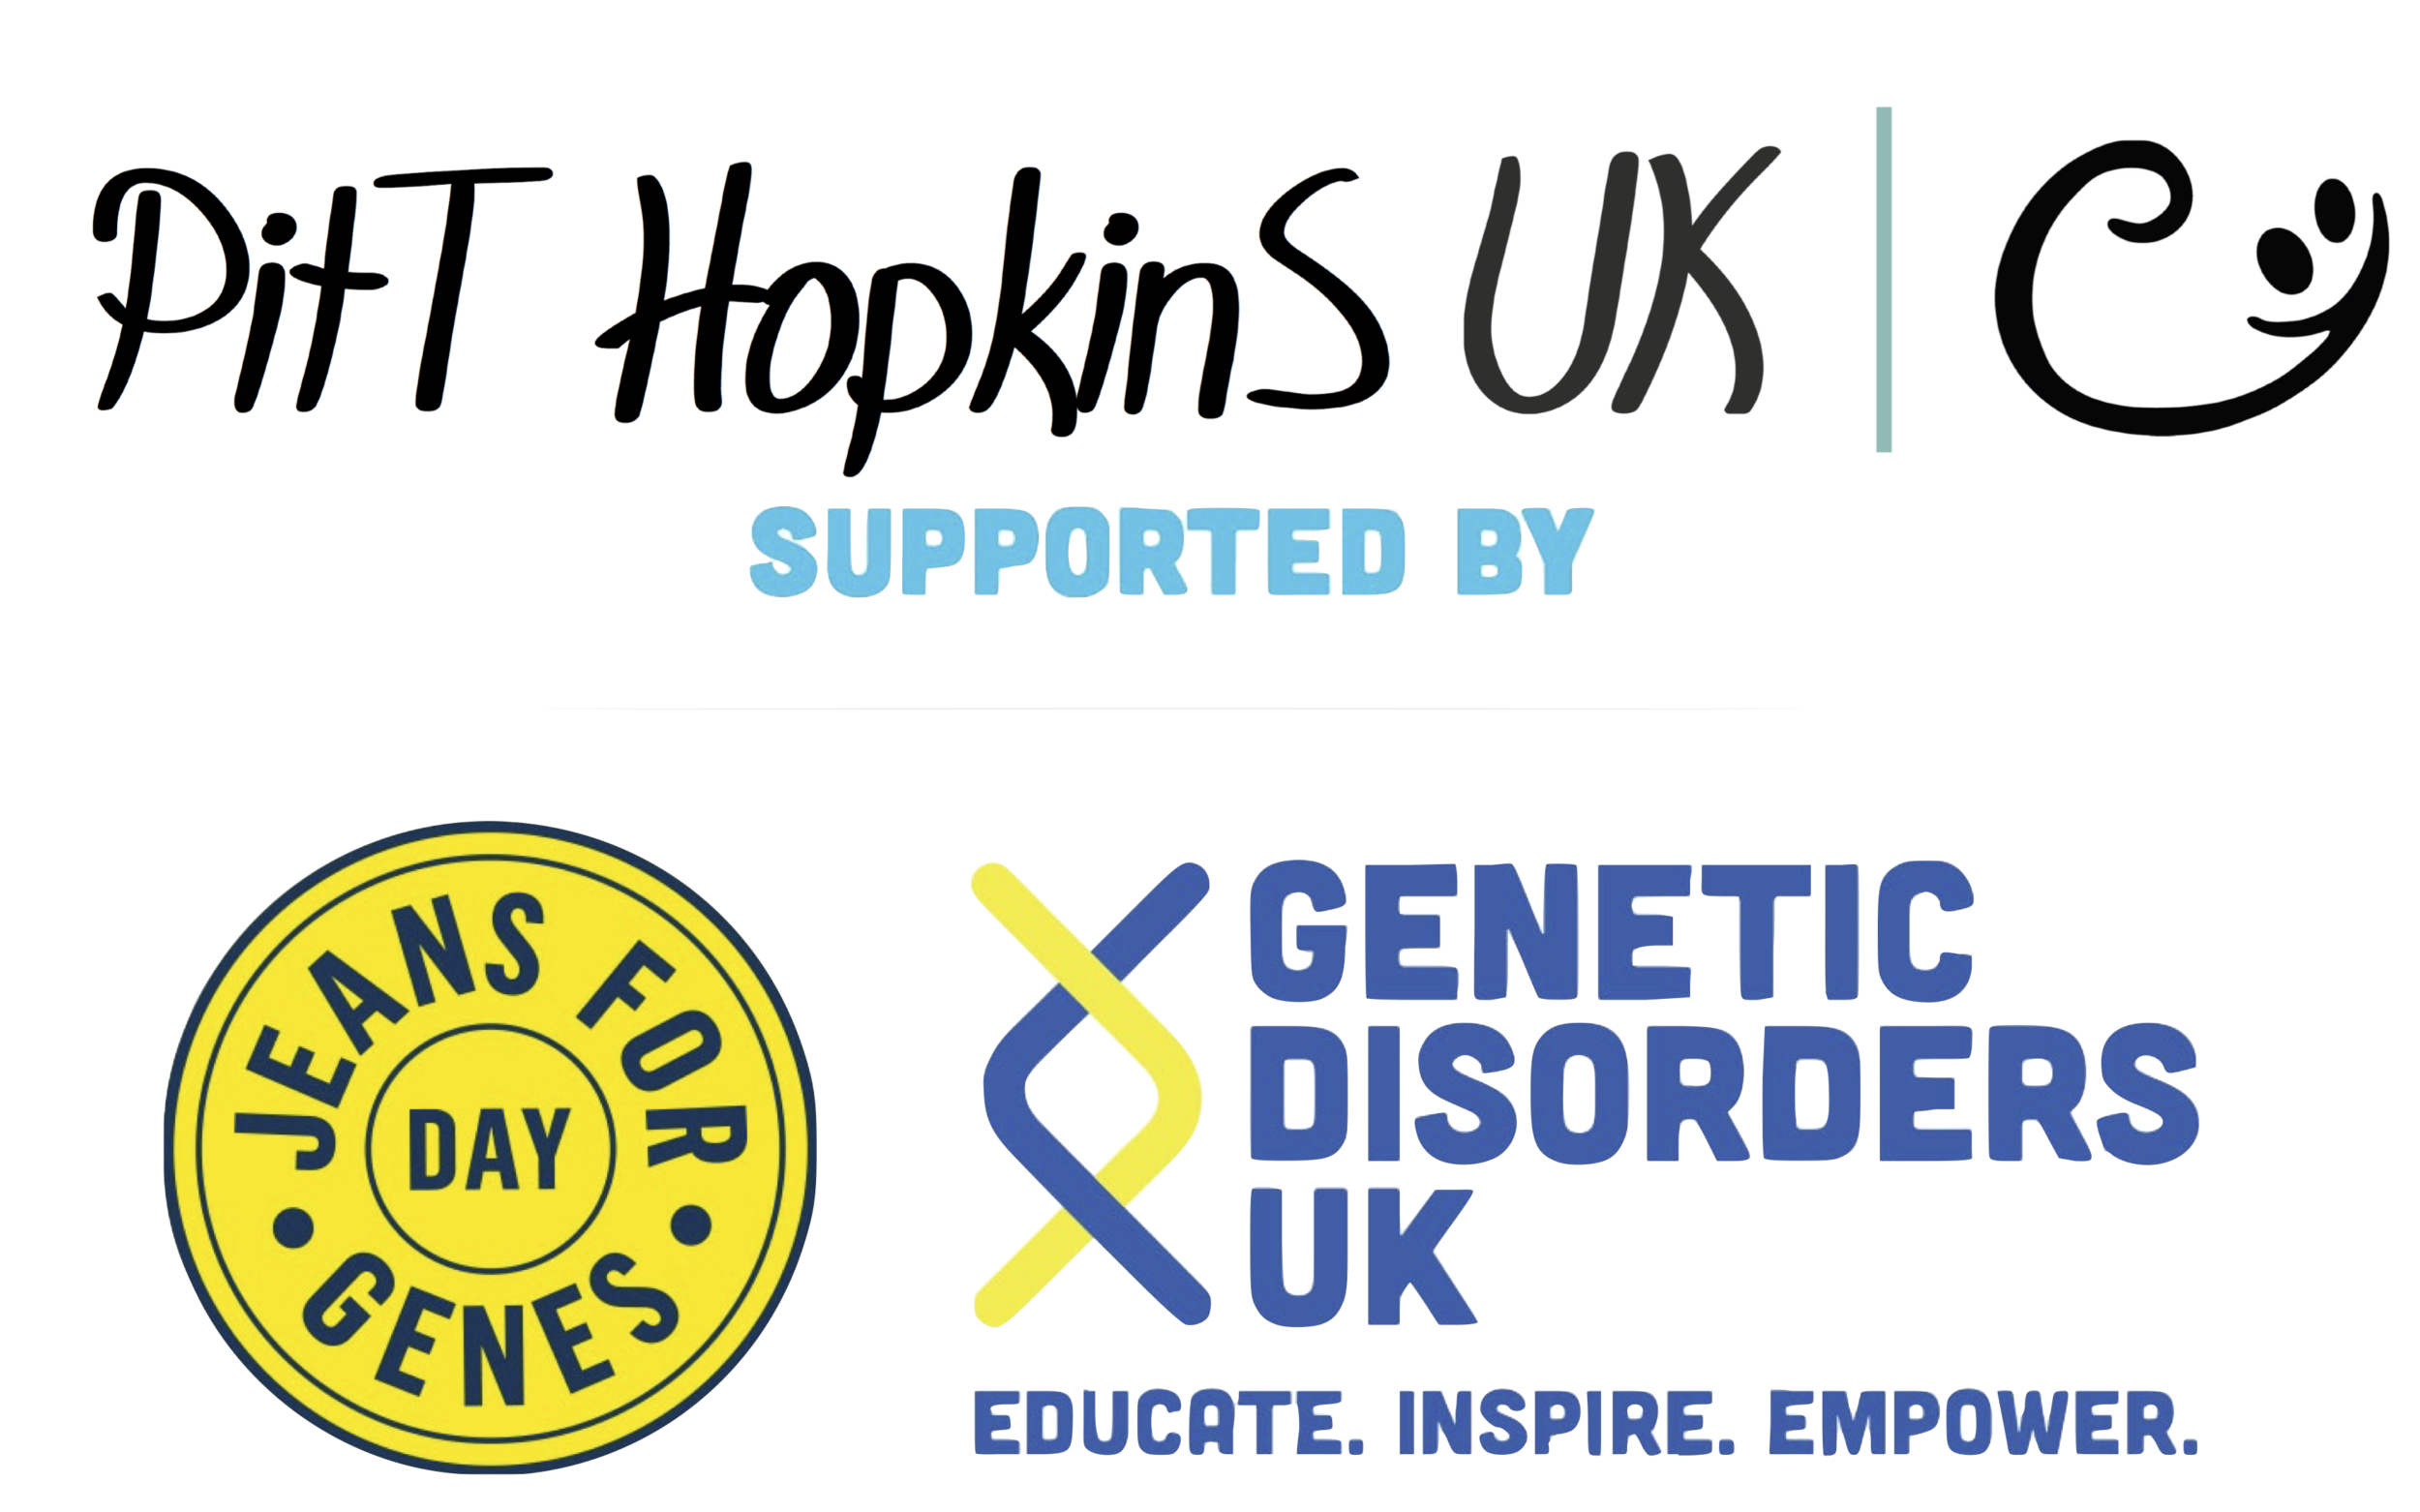 Pitt Hopkins Syndrome UK